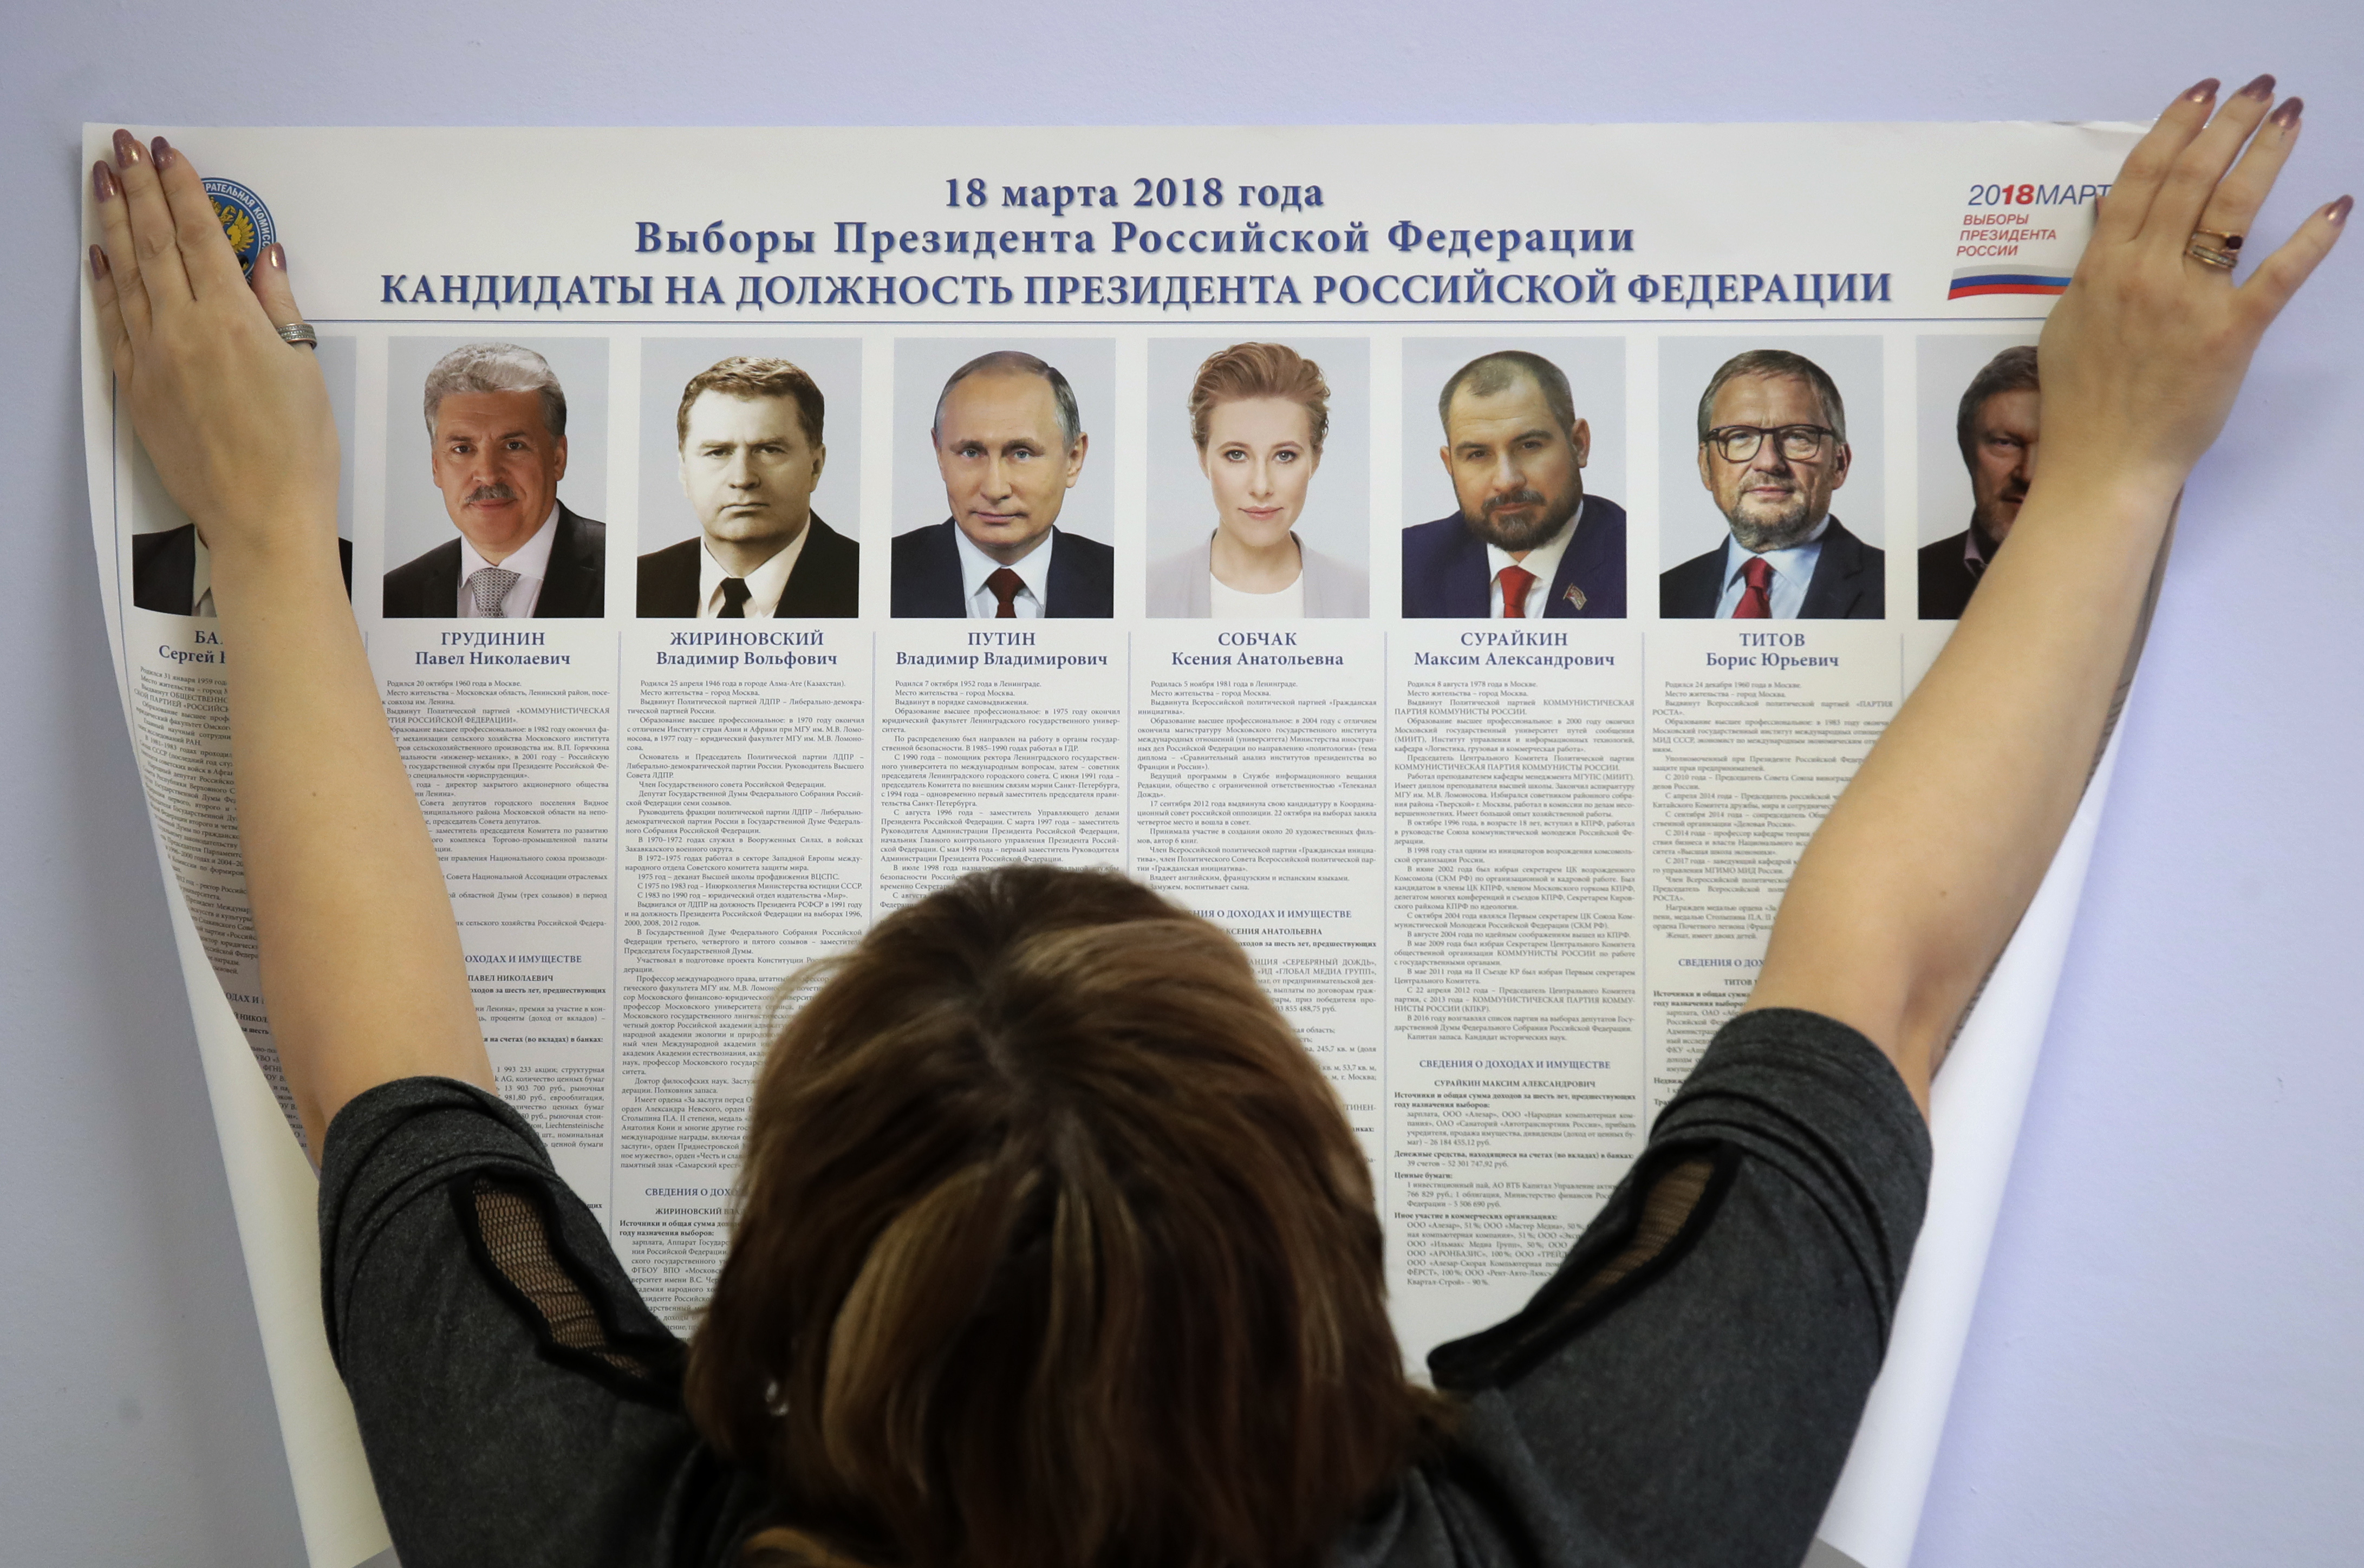 A polling station employee hangs a list of candidates for the 2018 Russian presidential election during preparations for the election at a polling station in St.Petersburg, Russia, March 16, 2018. The presidential elections will be held in Russia Mar...